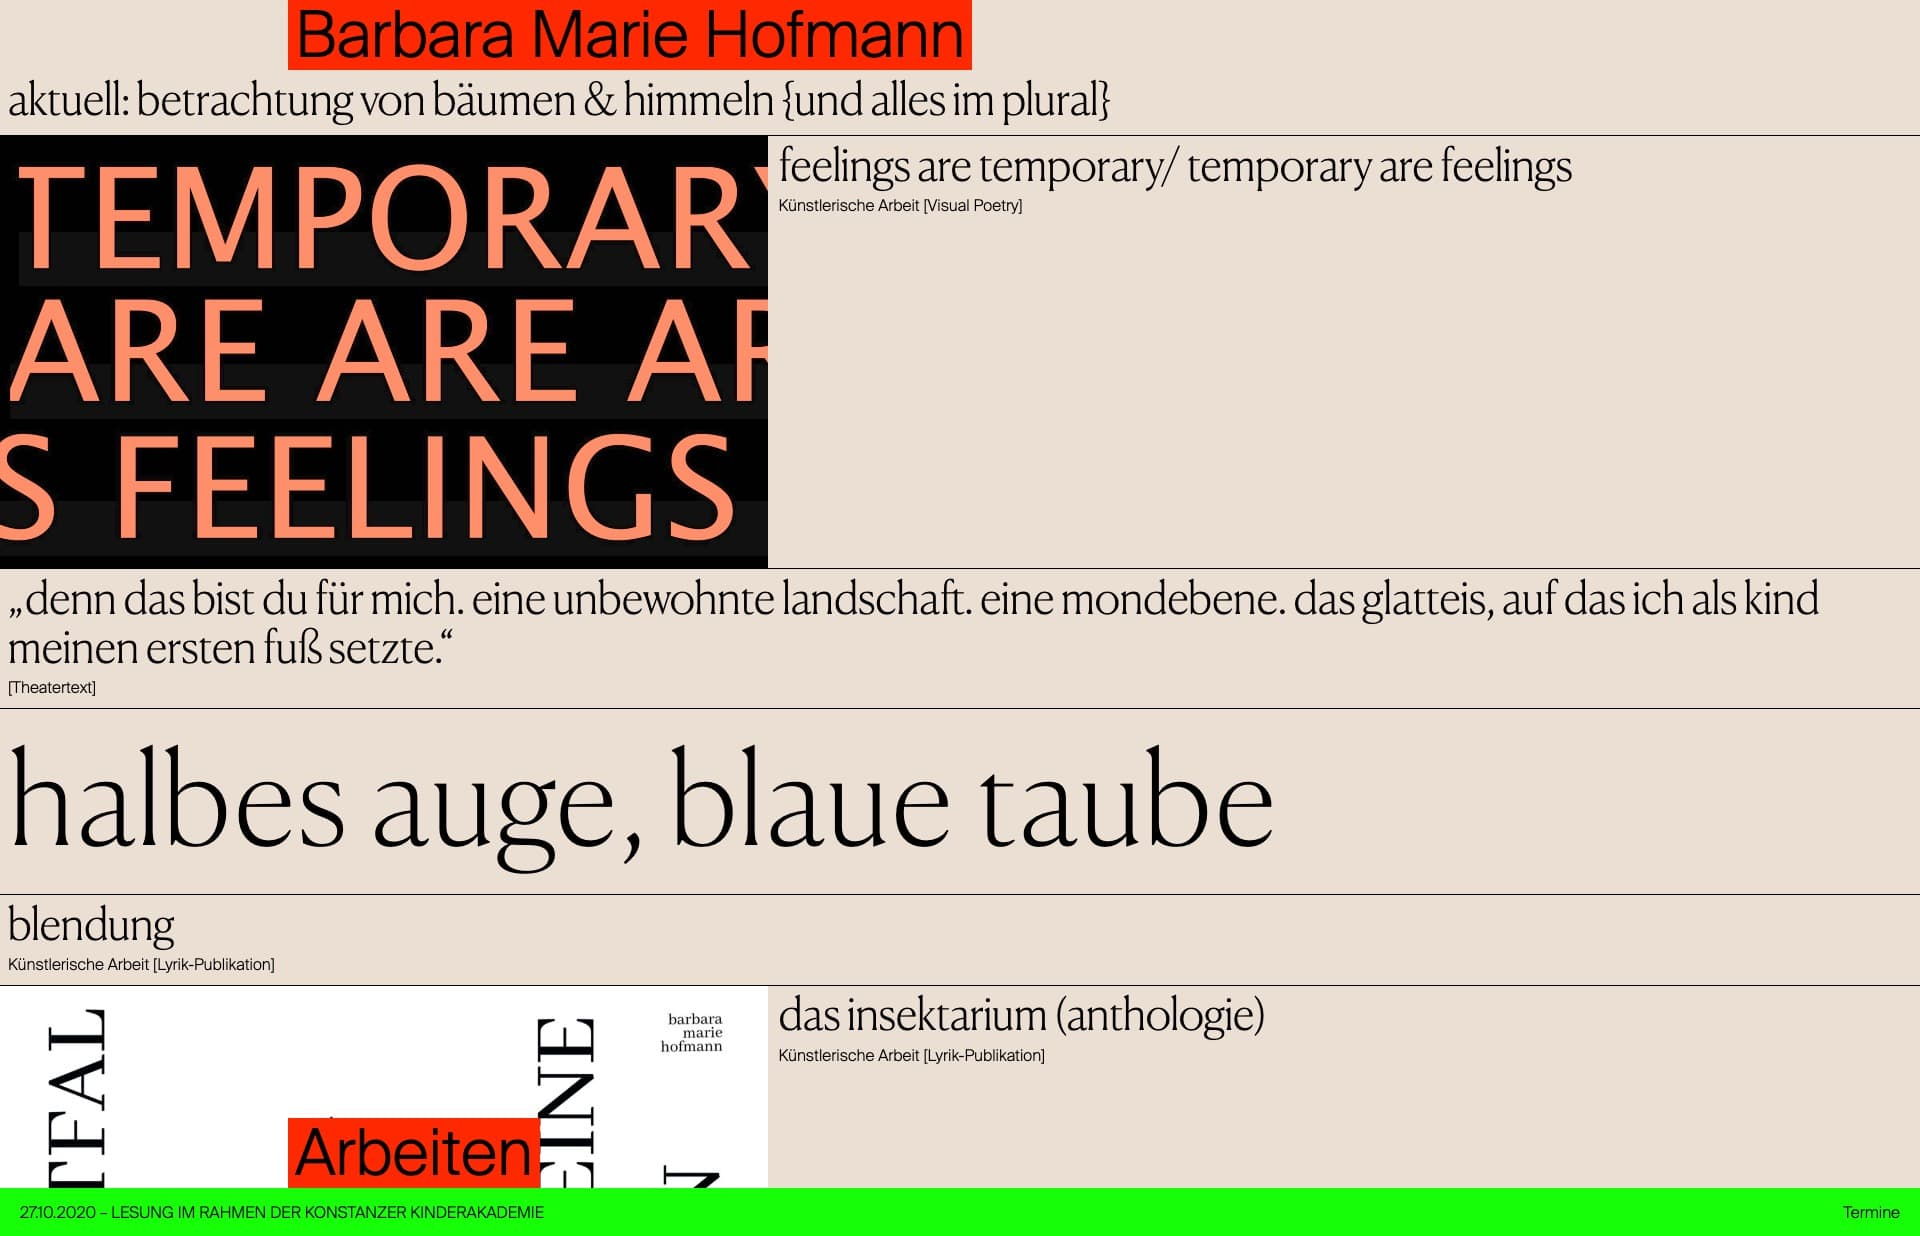 Screenshot of the website Barbara Marie Hofmann, featured on The Gallery, a curated collection of minimal websites